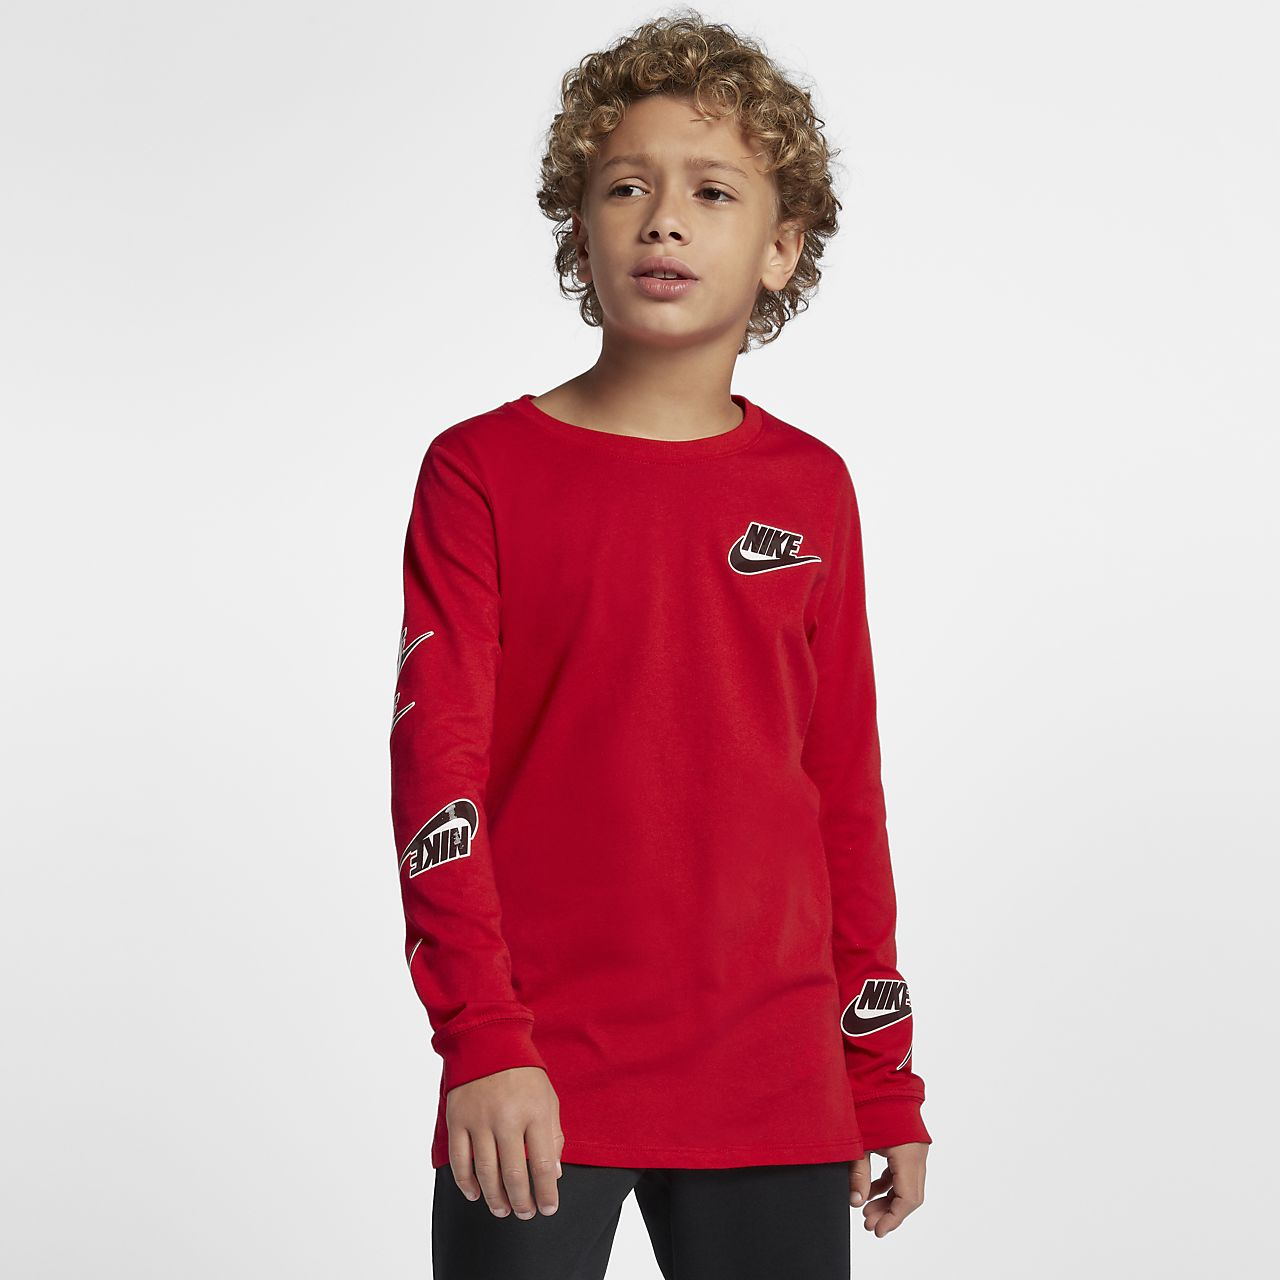 cc4d27a42c23f Nike Sportswear Big Kids  (Boys ) Long-Sleeve T-Shirt. Nike.com